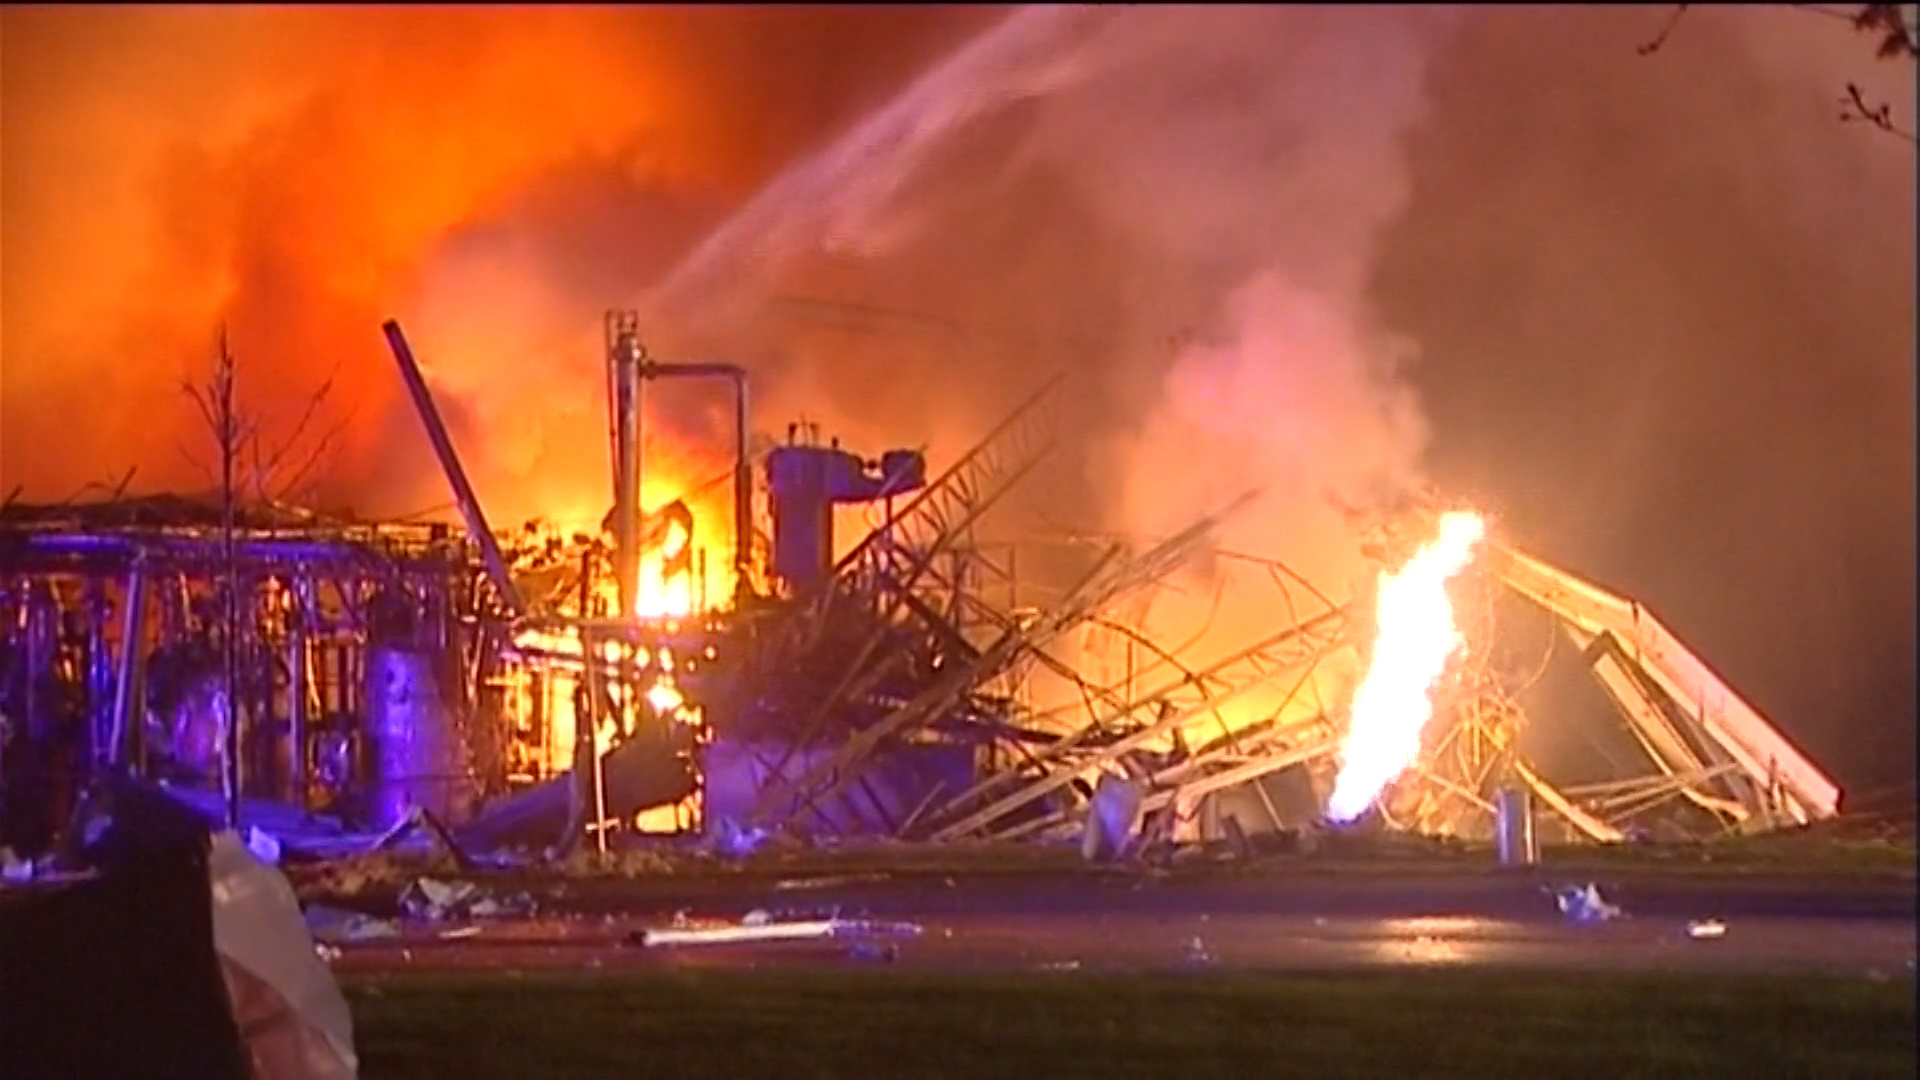 3 missing, 4 injured after explosion at Illinois silicone plant